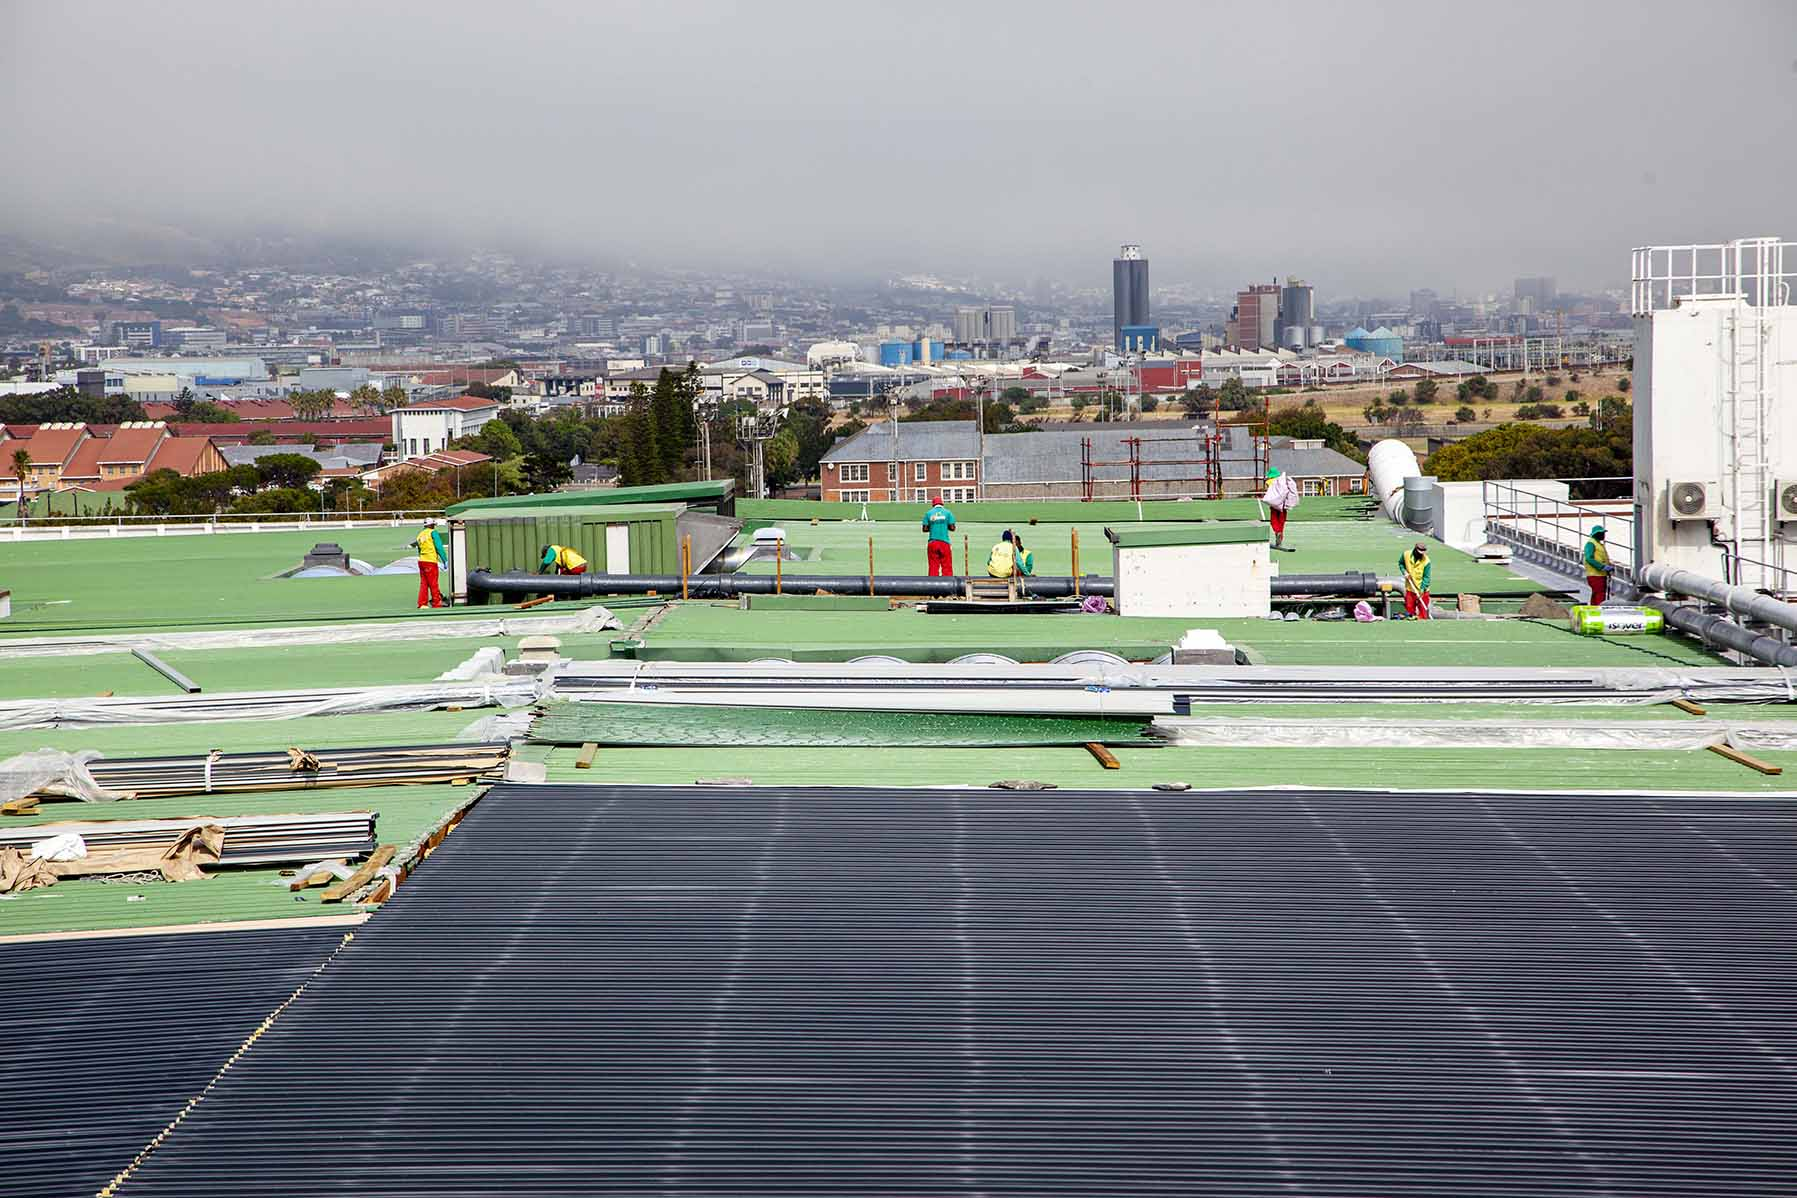 Roof sheeting contractors Cape Town